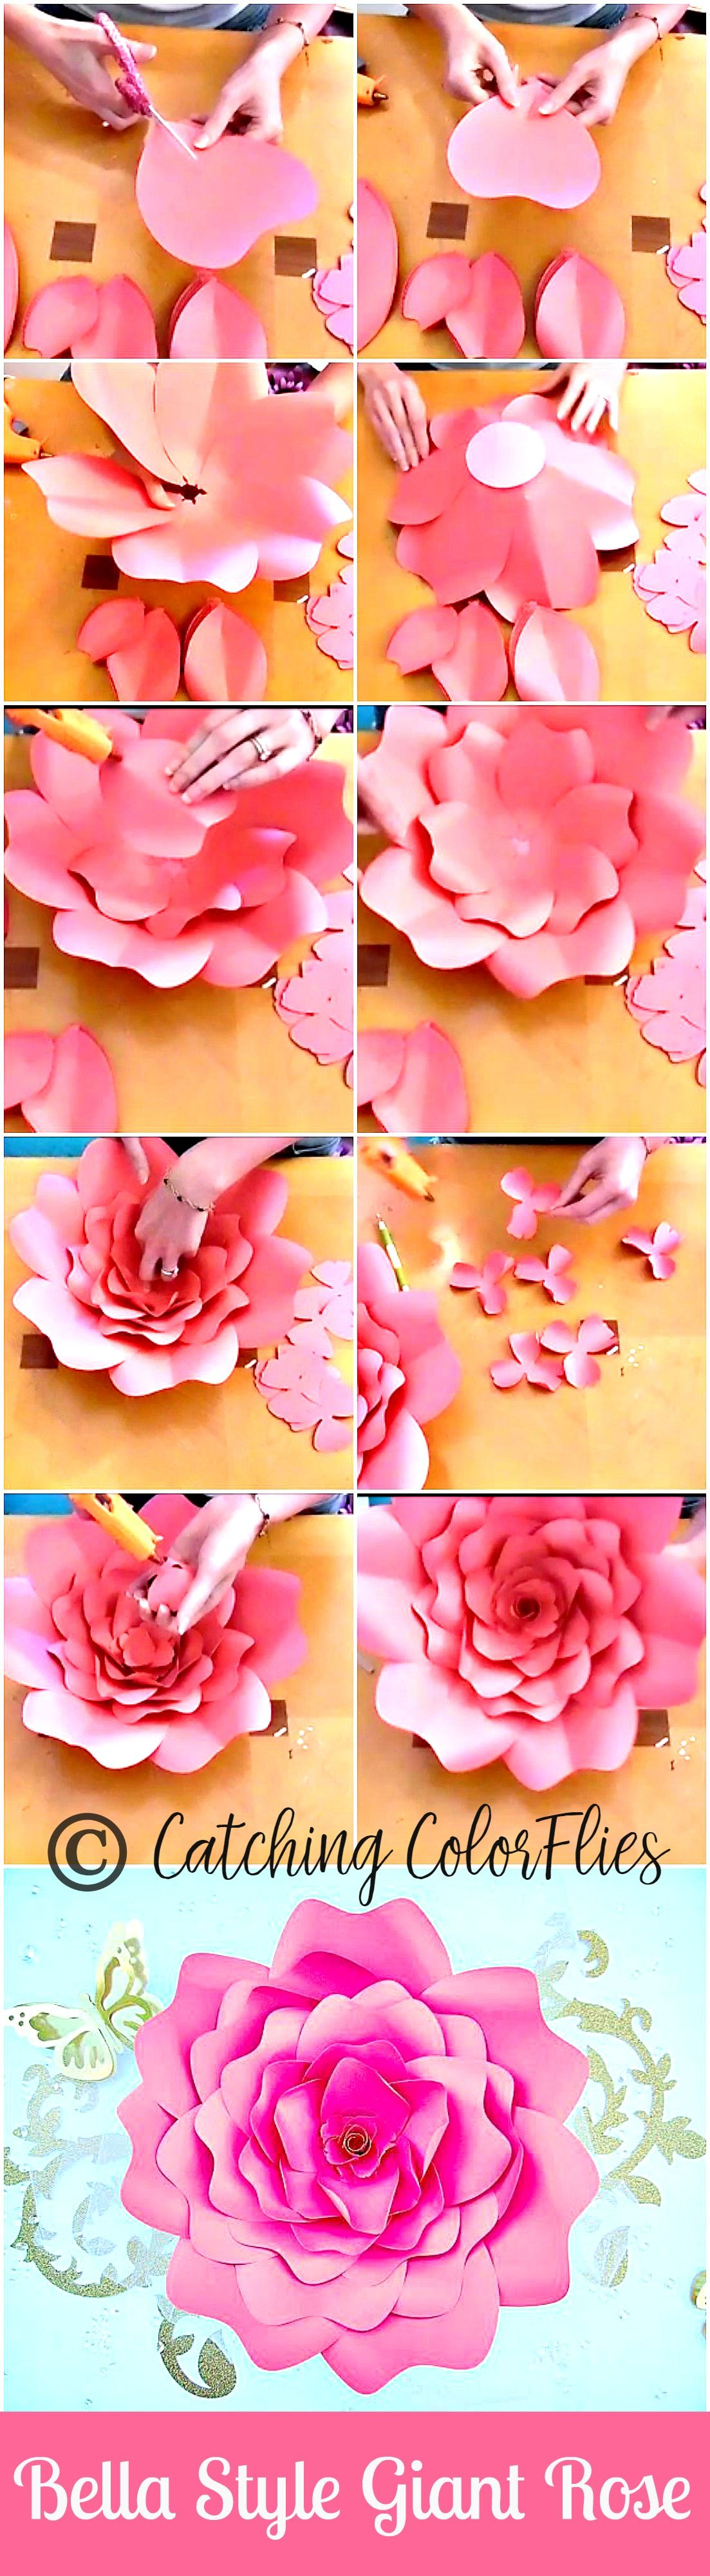 Giant Paper Rose Tutorial Flower Wall How To Make Giant Paper